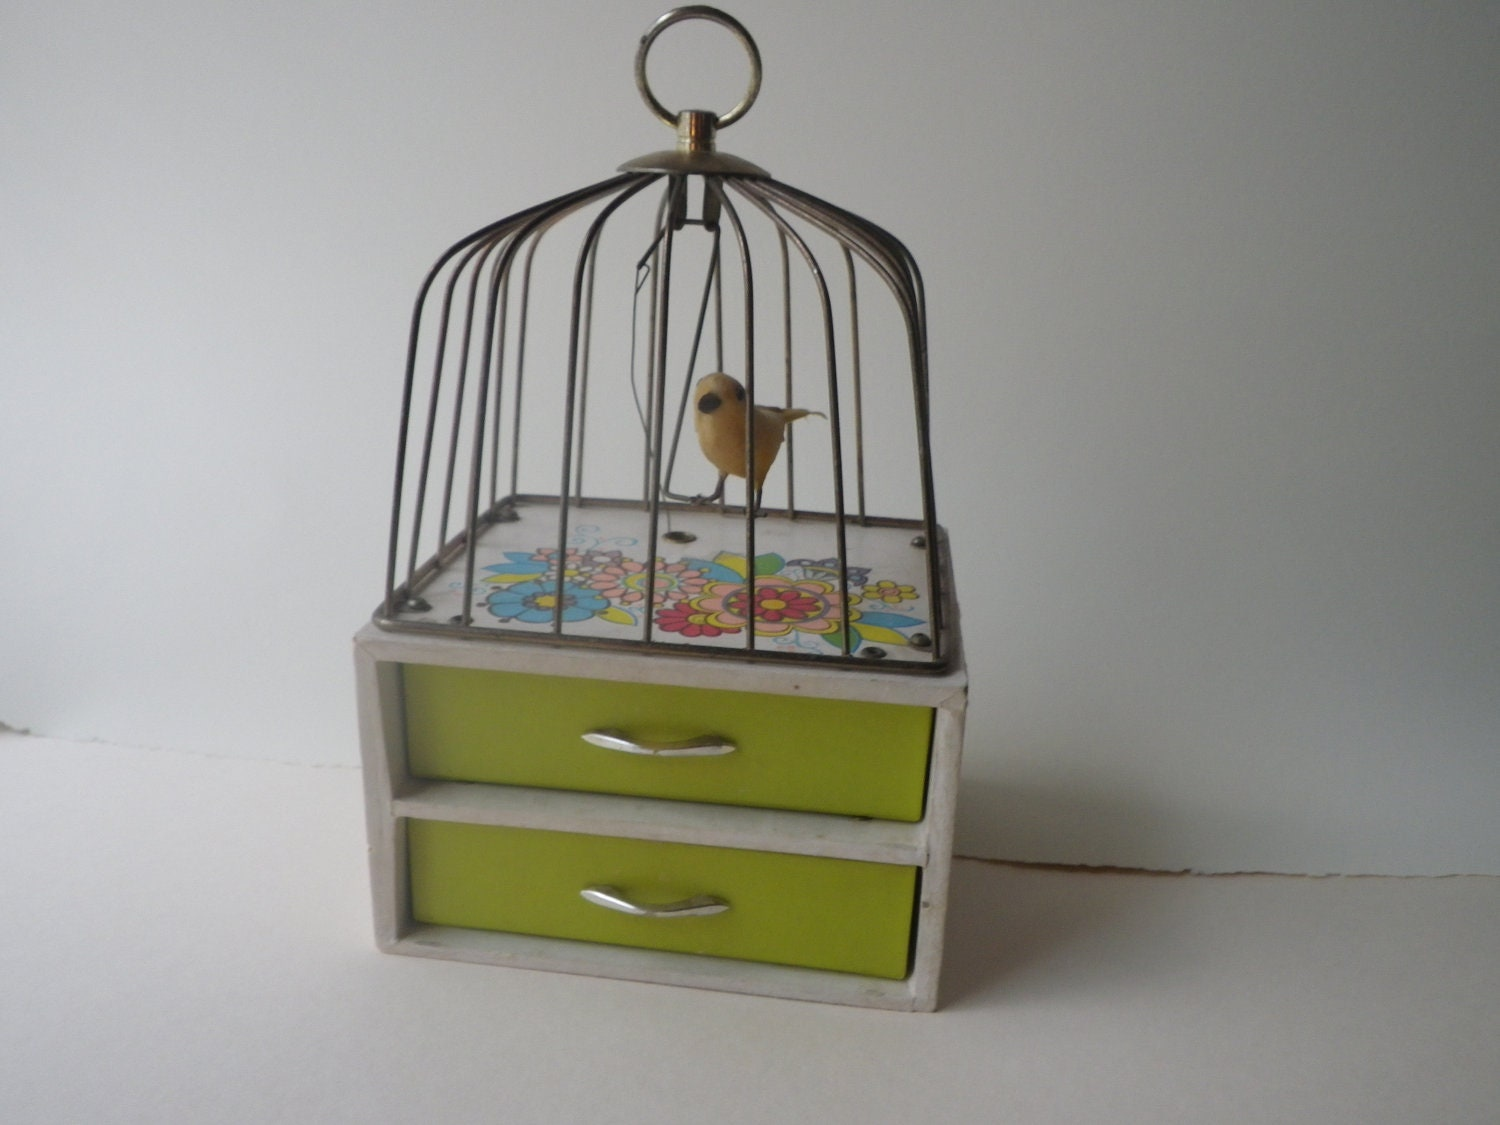 Vintage  Musical Box with Bird Cage- Plays Music while the bird swings - HiddenStarlings